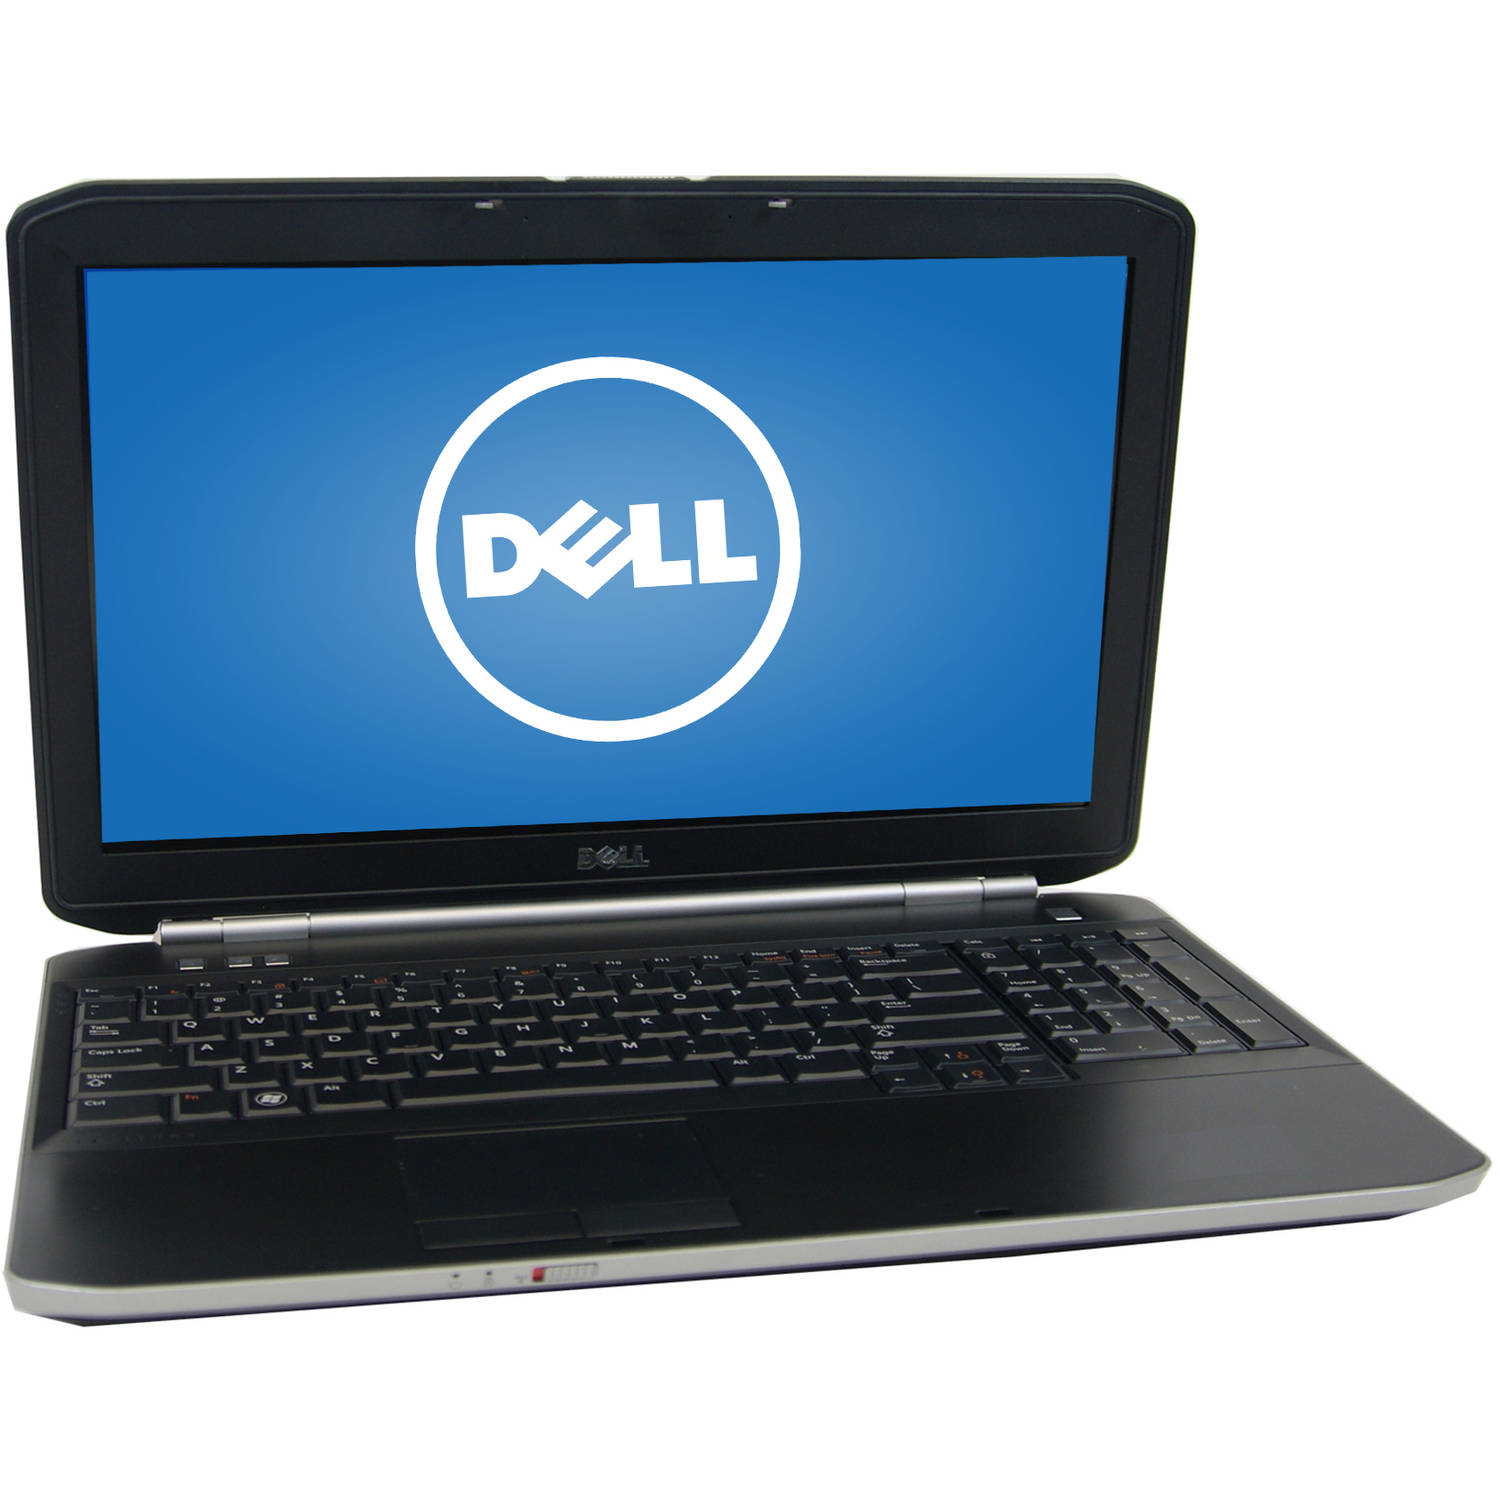 "Refurbished Dell Silver 15.6"" E5520 Laptop PC with Intel Core i3-2310M Processor, 4GB Memory, 320GB Hard Drive and Windows 7 Professional"